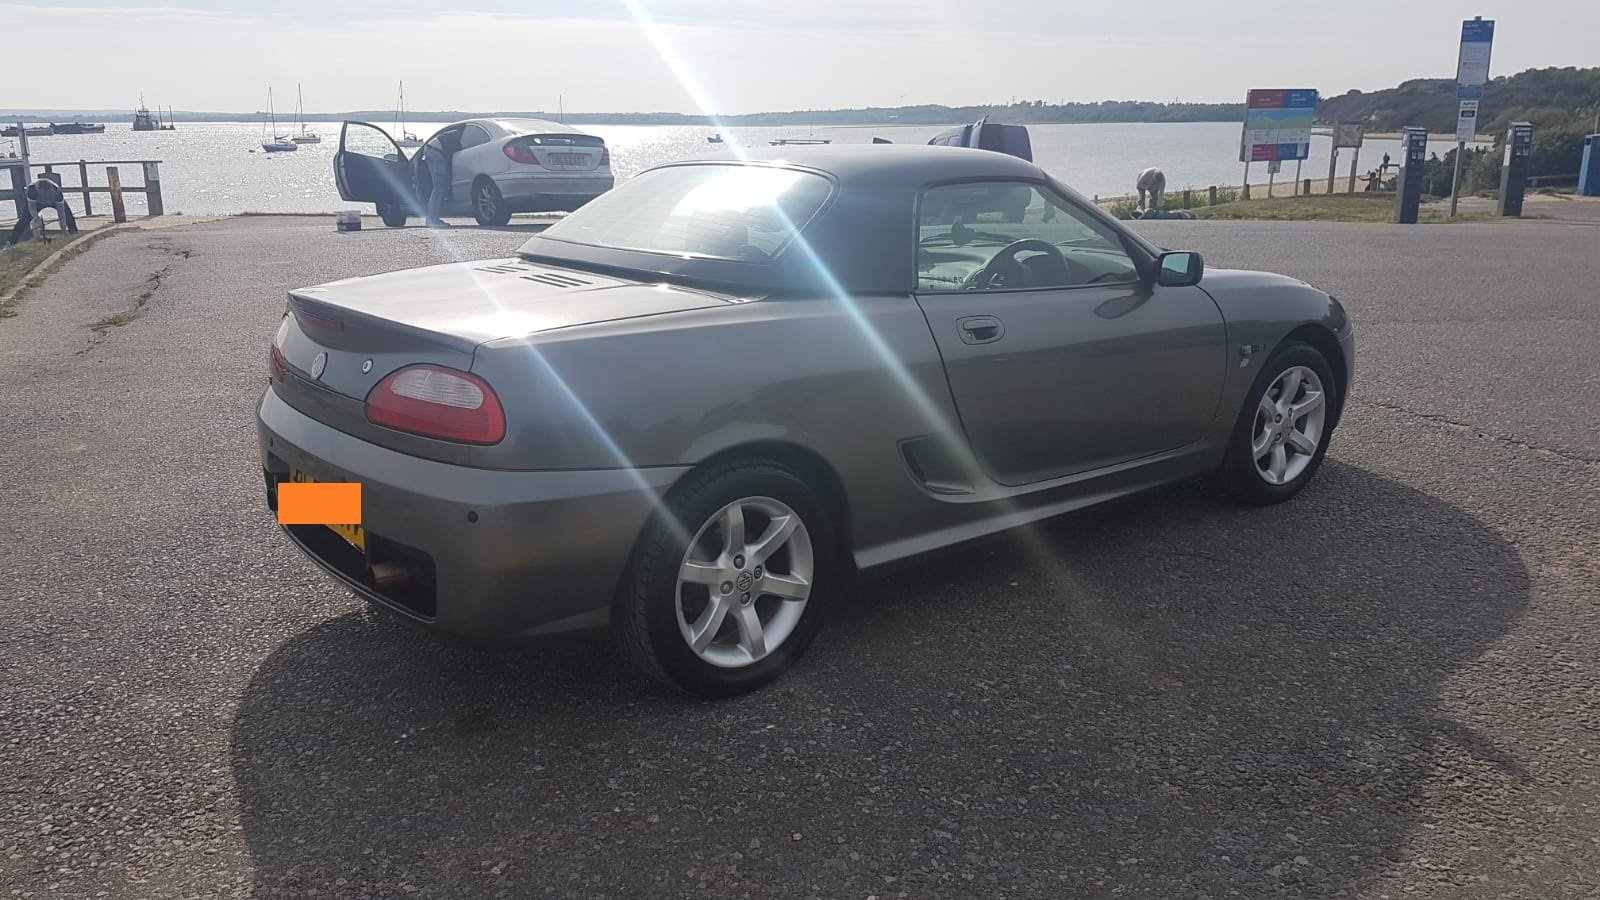 2005 MGTF  new clutch, hard top For Sale (picture 3 of 6)